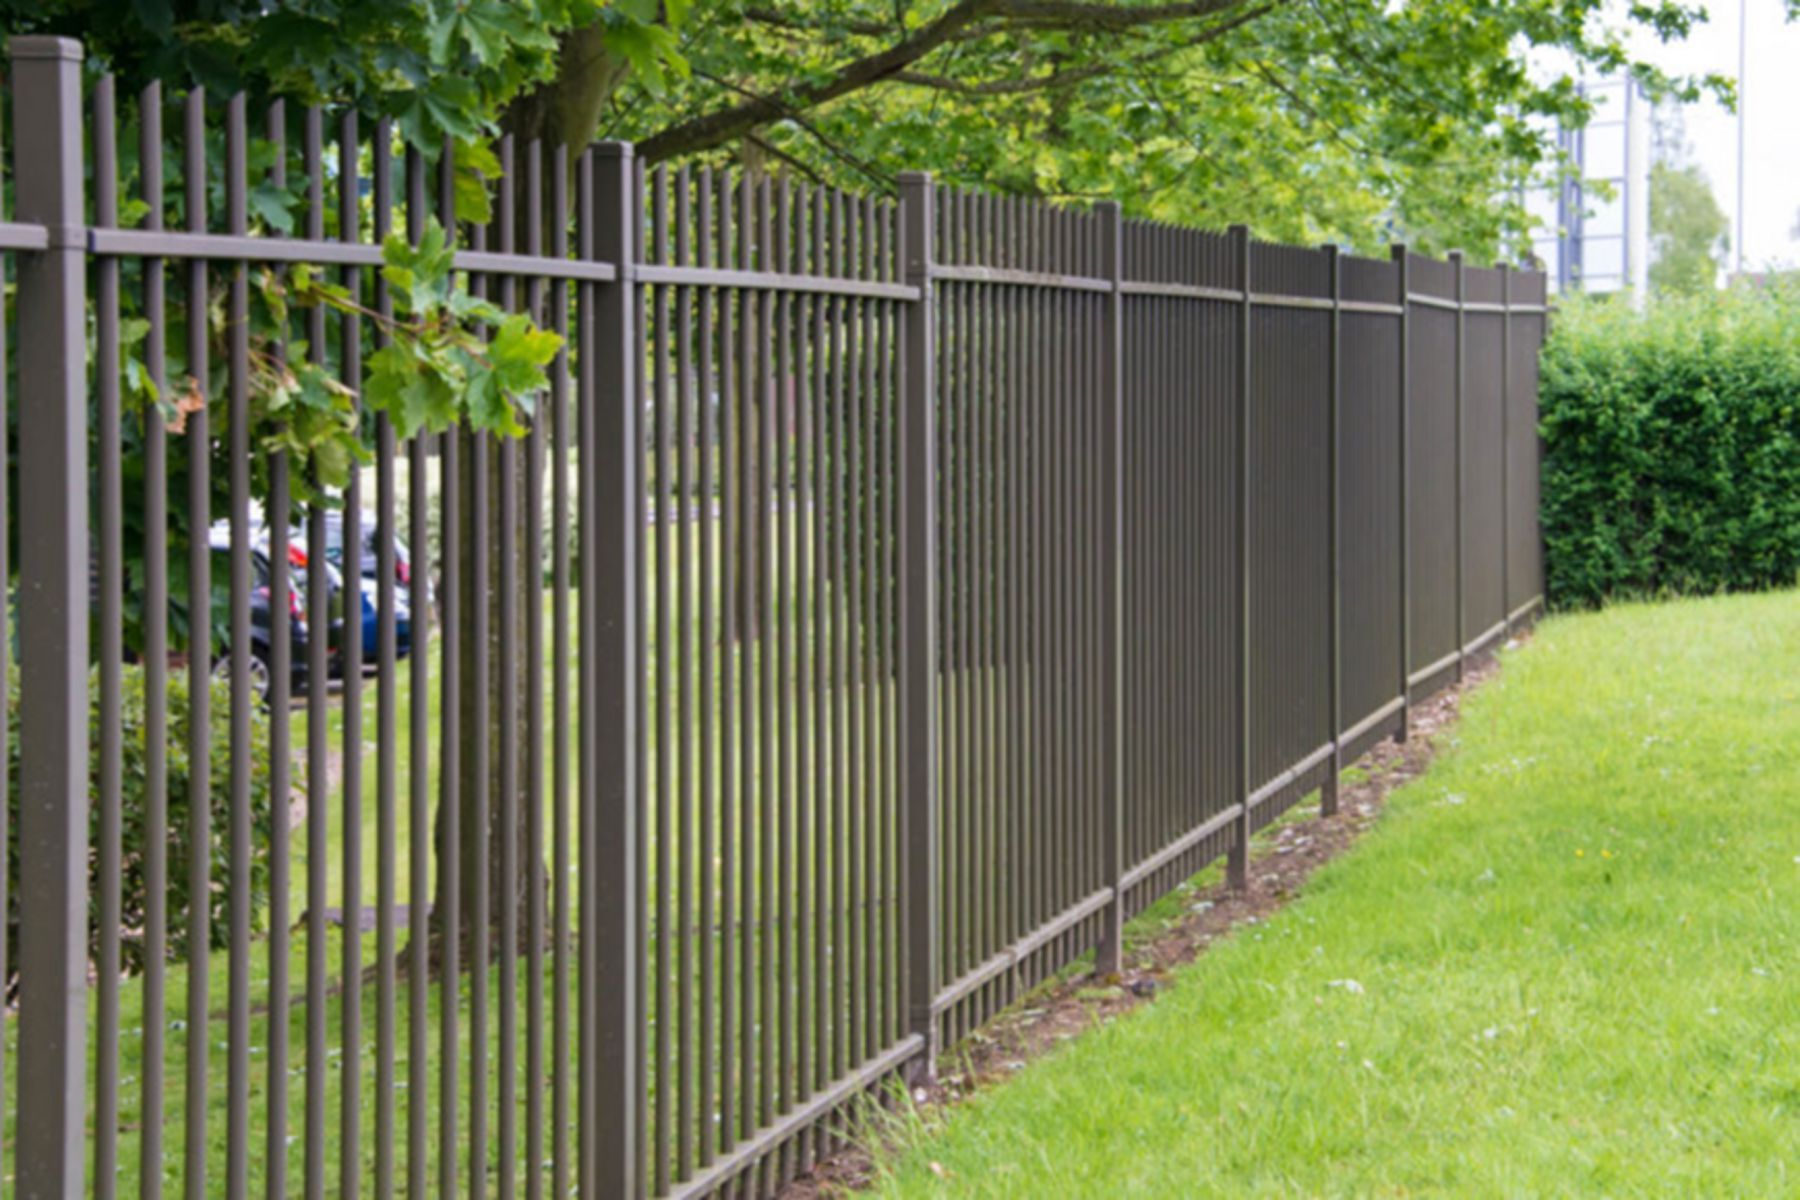 9 Interesting Fence Design Ideas To Make Your Home More Elegant In